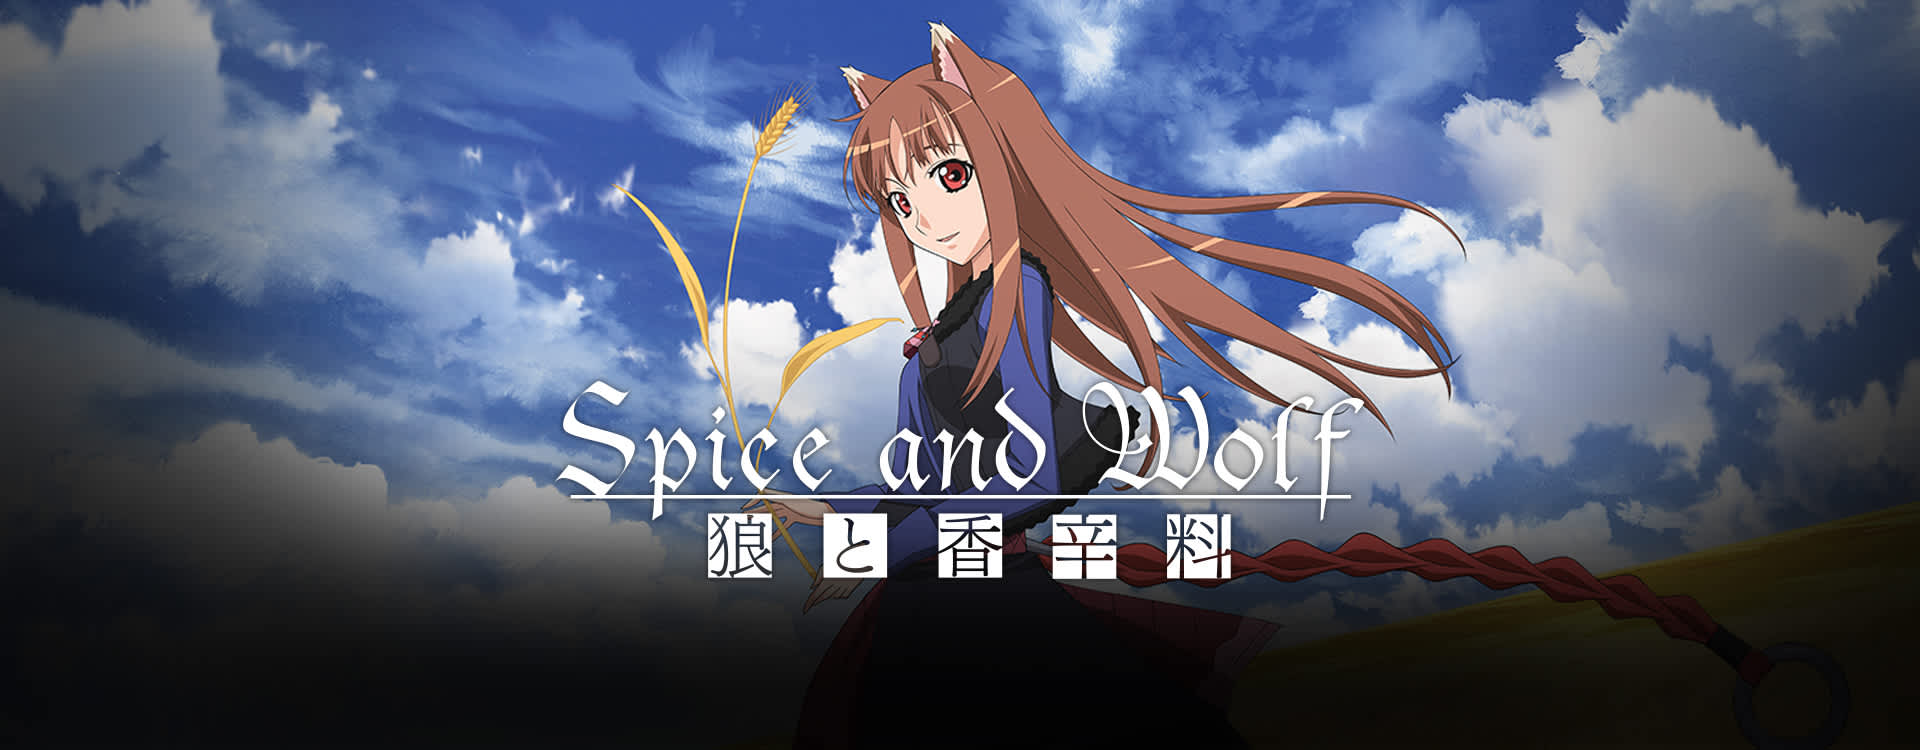 Animal Instincts Watch Online watch spice and wolf episodes sub & dub | fantasy, romance